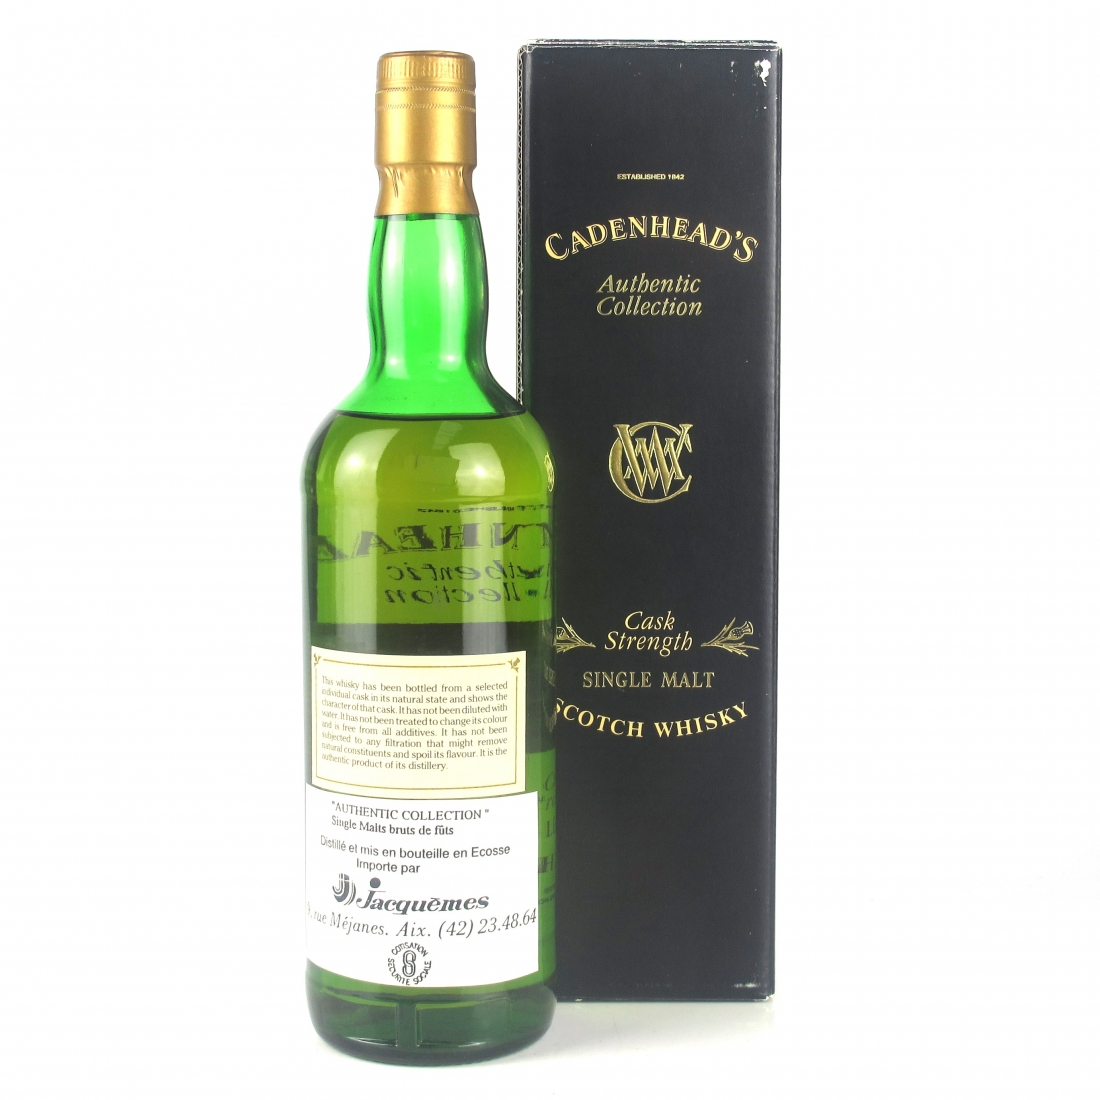 Imperial 1979 Cadenhead's 14 Year Old